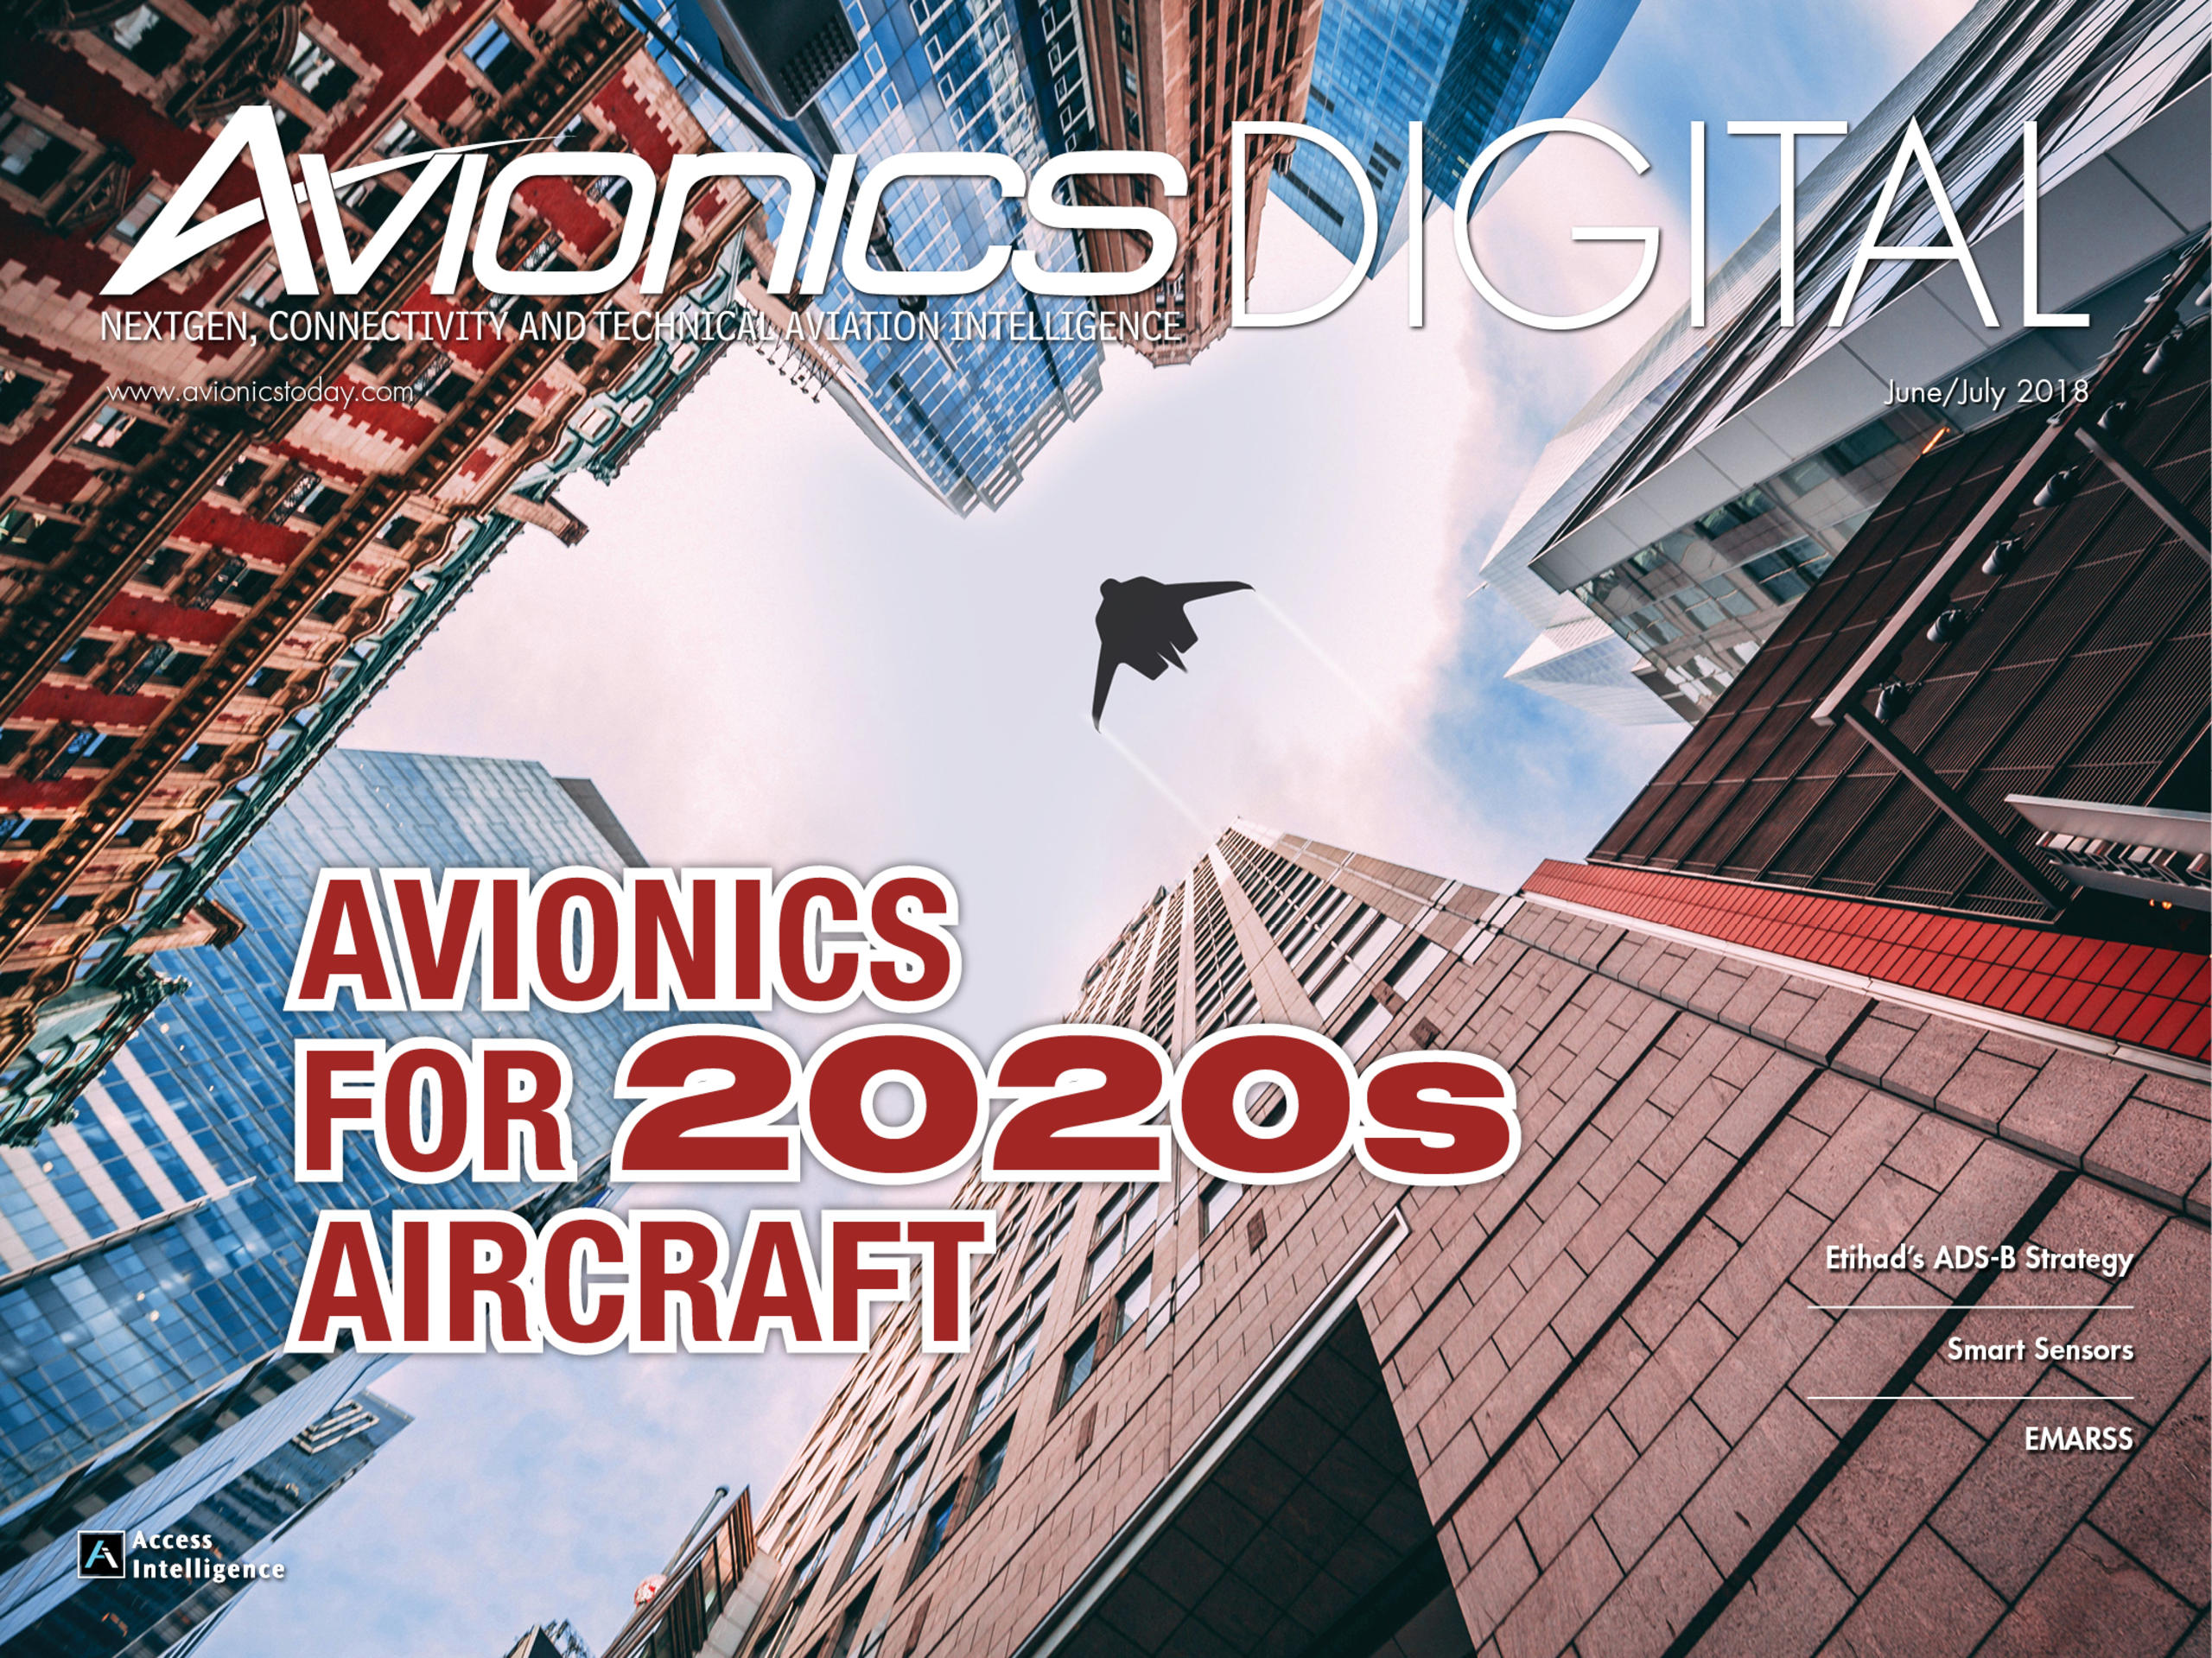 June July 2018 Avionics For 2020s Evtol And Supersonic Aircraft Aerospace Wire Harness Assembly Image Digital Edition